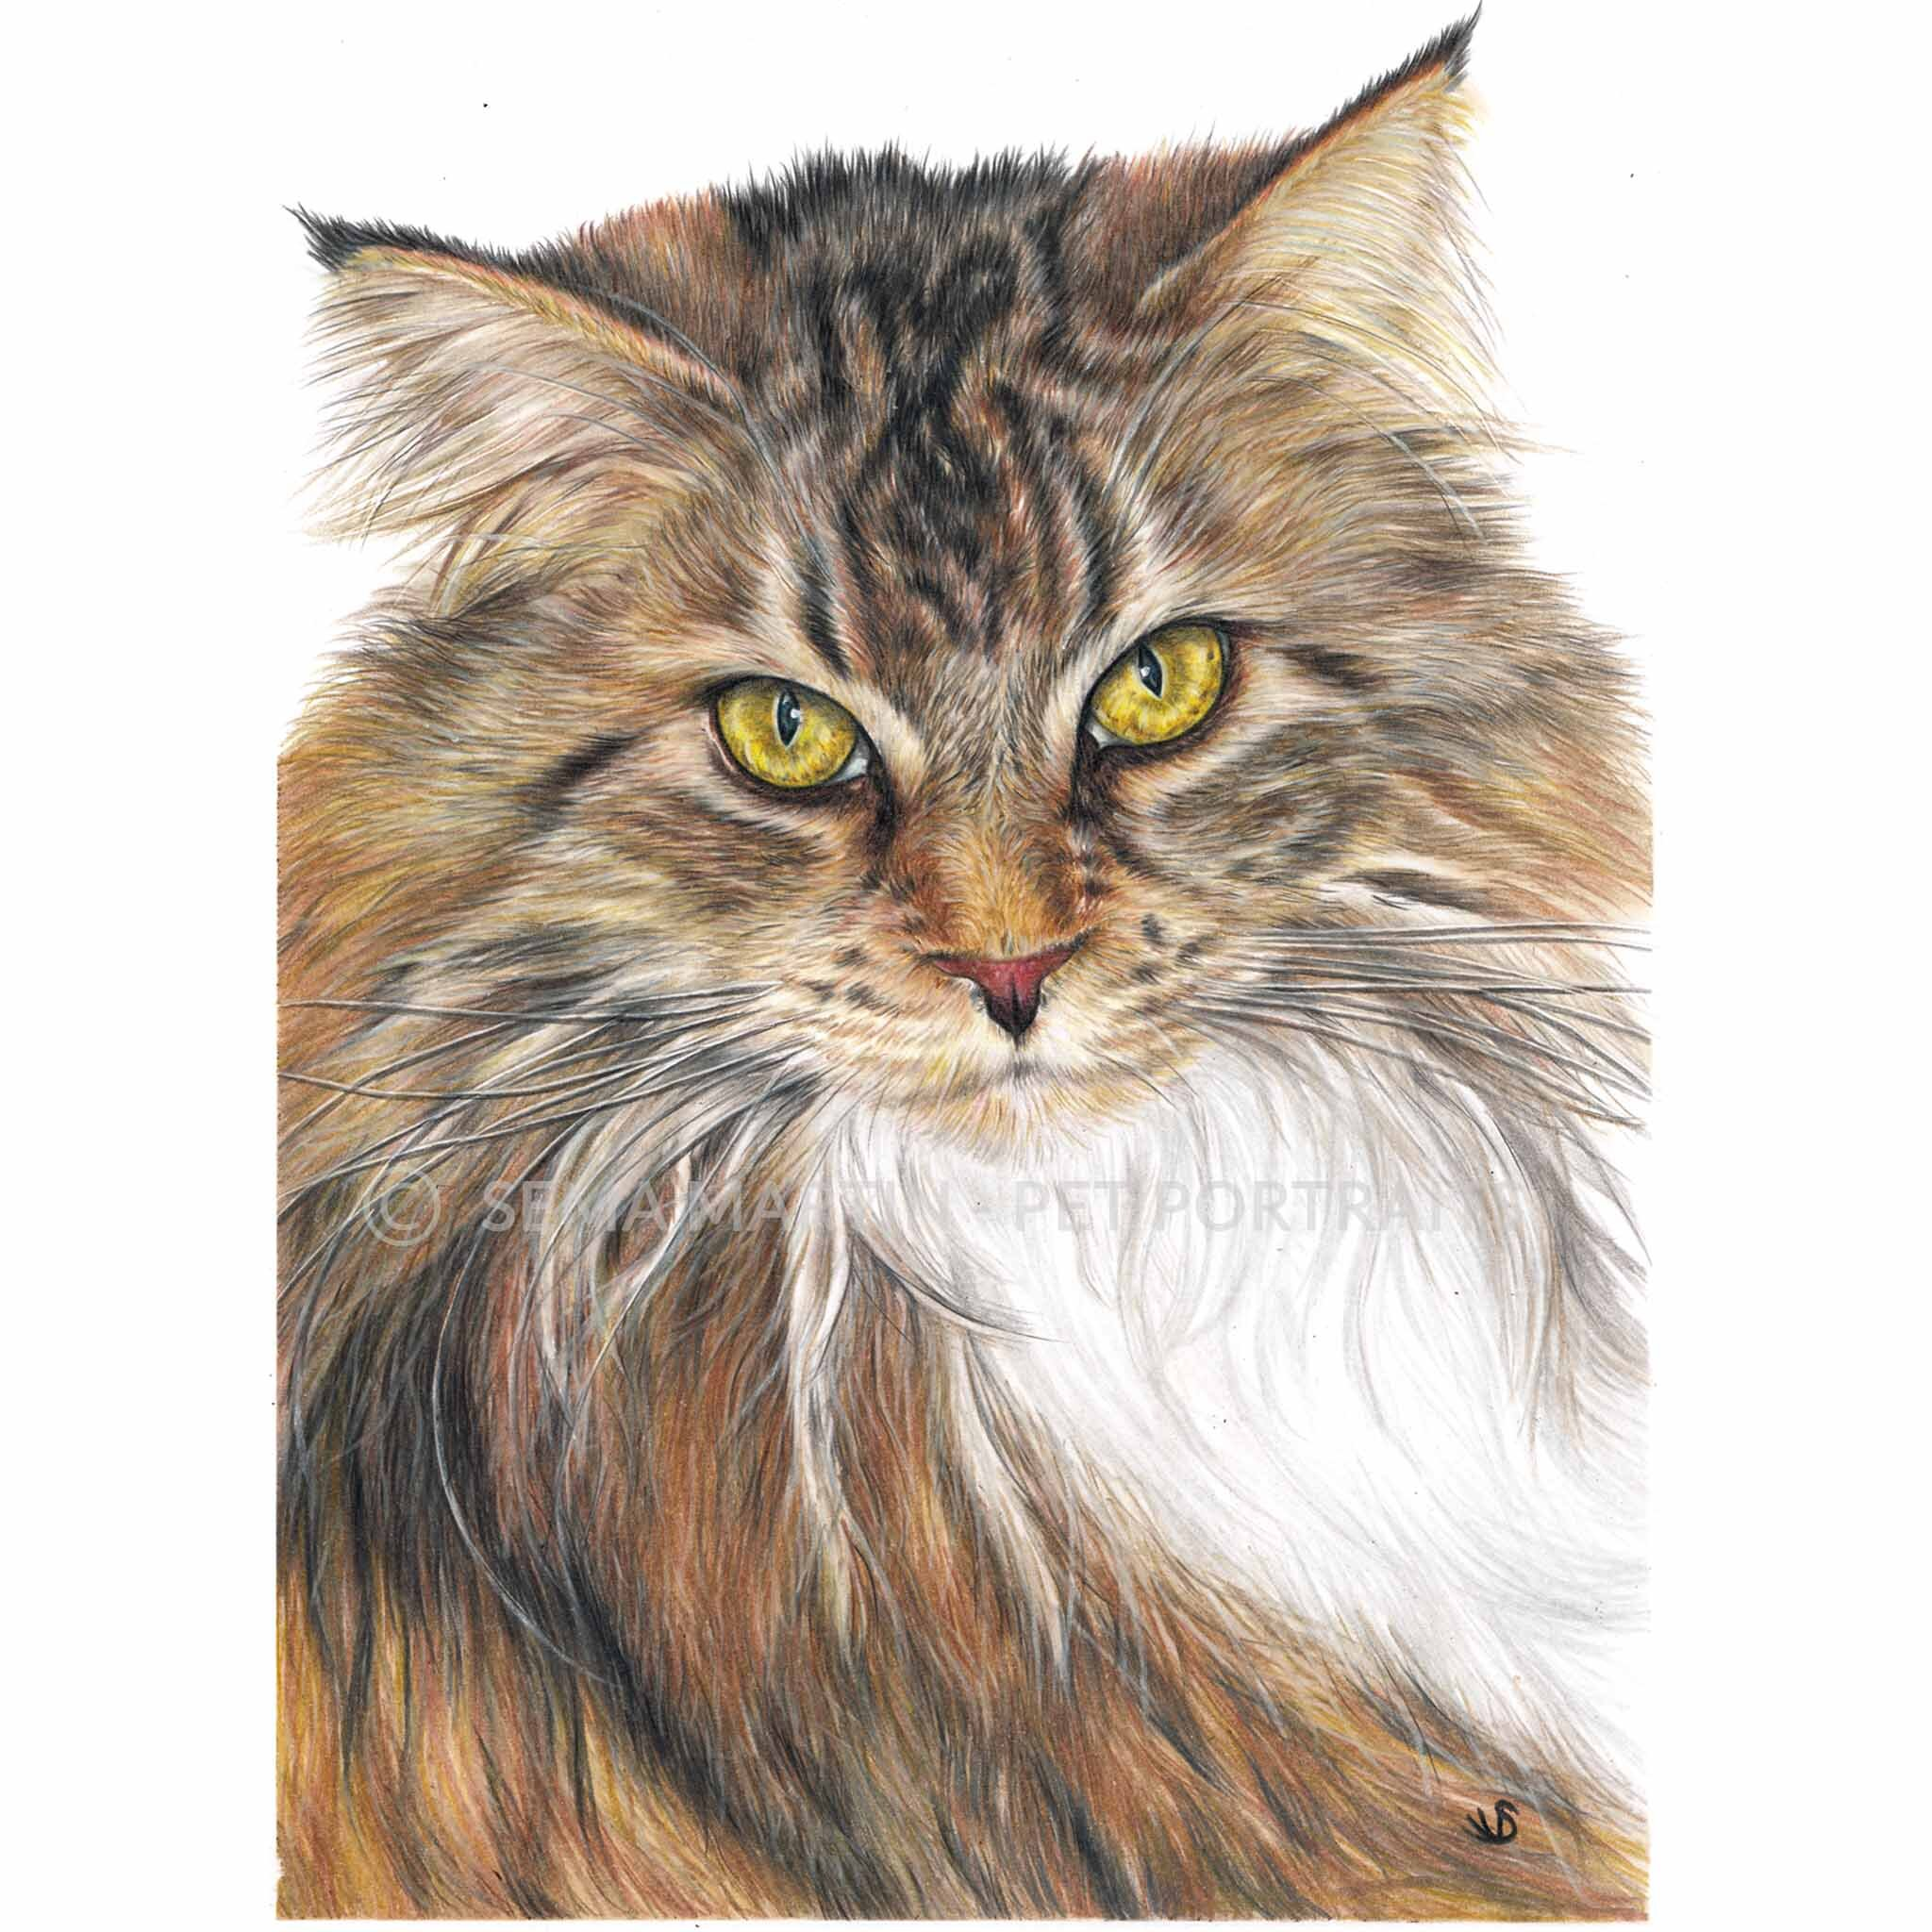 'Libby' - USA, 8.3 x 11.7 inches, 2019, Color Pencil Cat Portrait of a Maine Coon